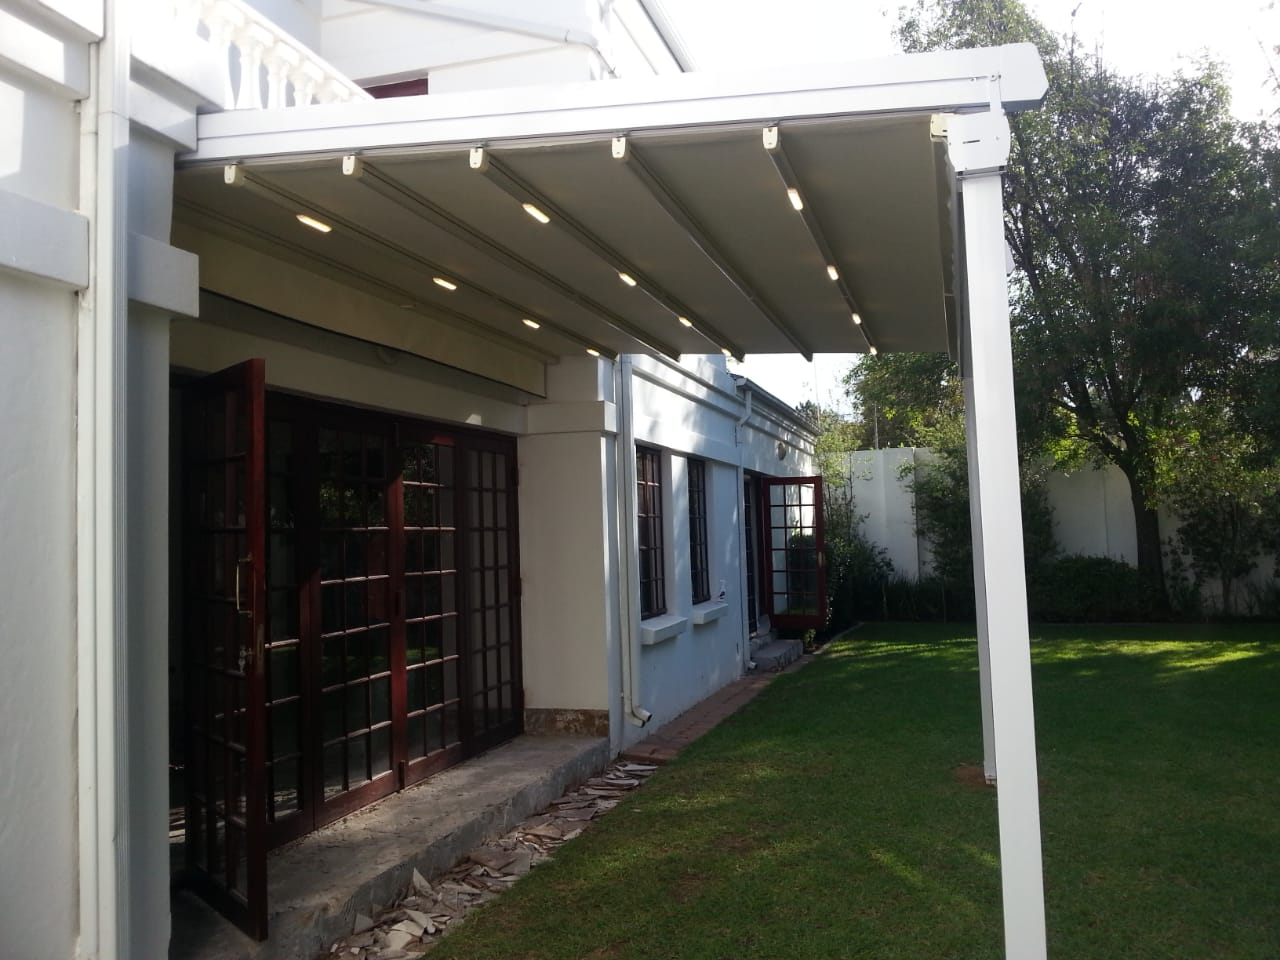 Add a retractable awning